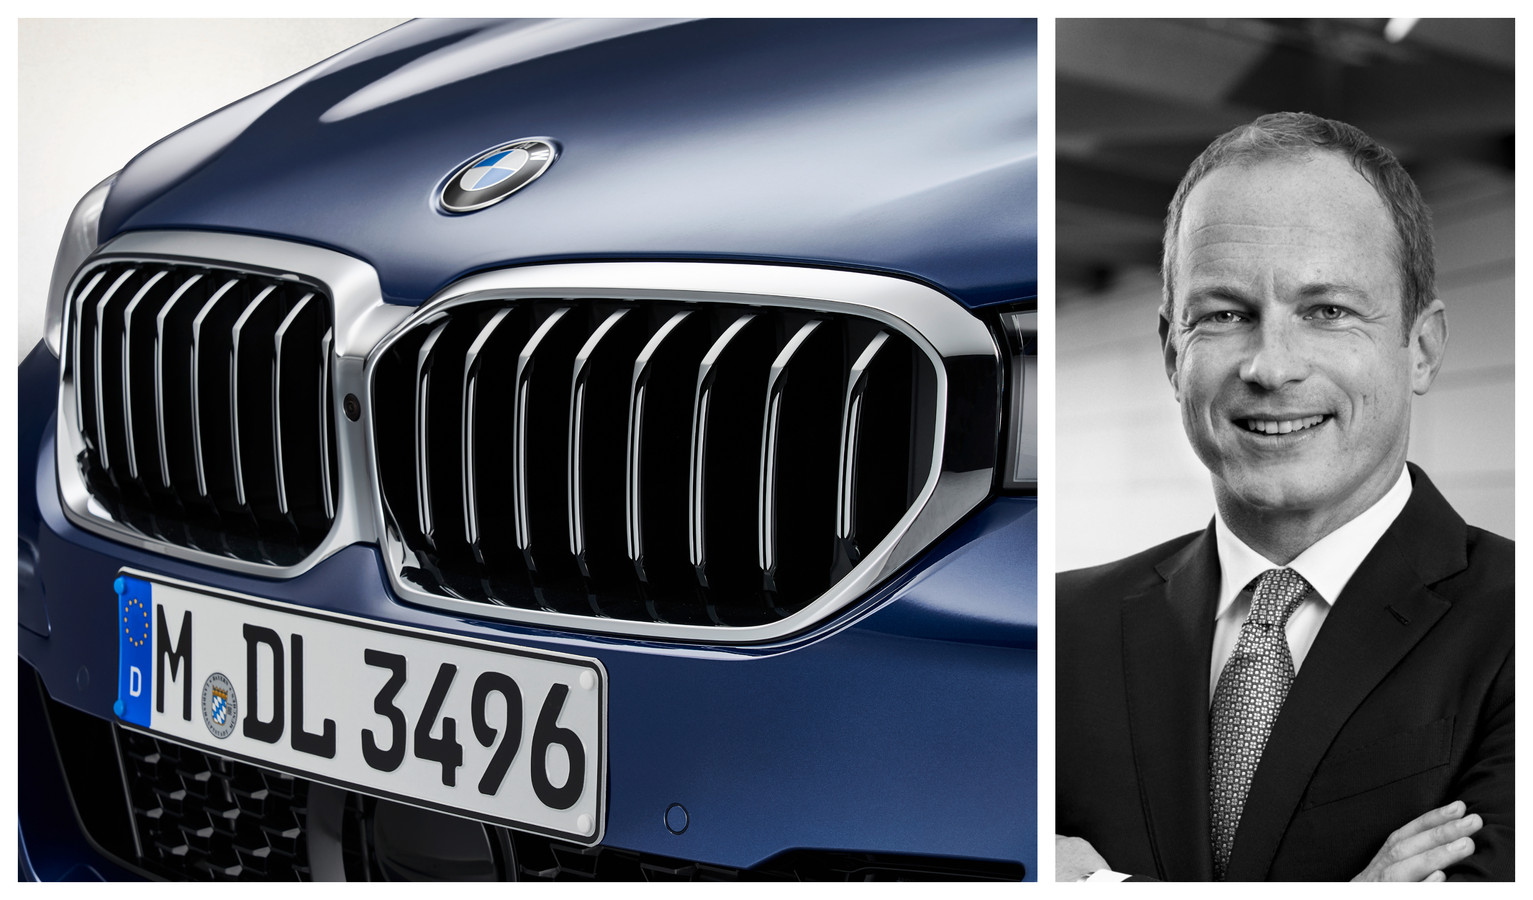 Dr. Peter Henrich, Senior Vice President Product Management bij BMW